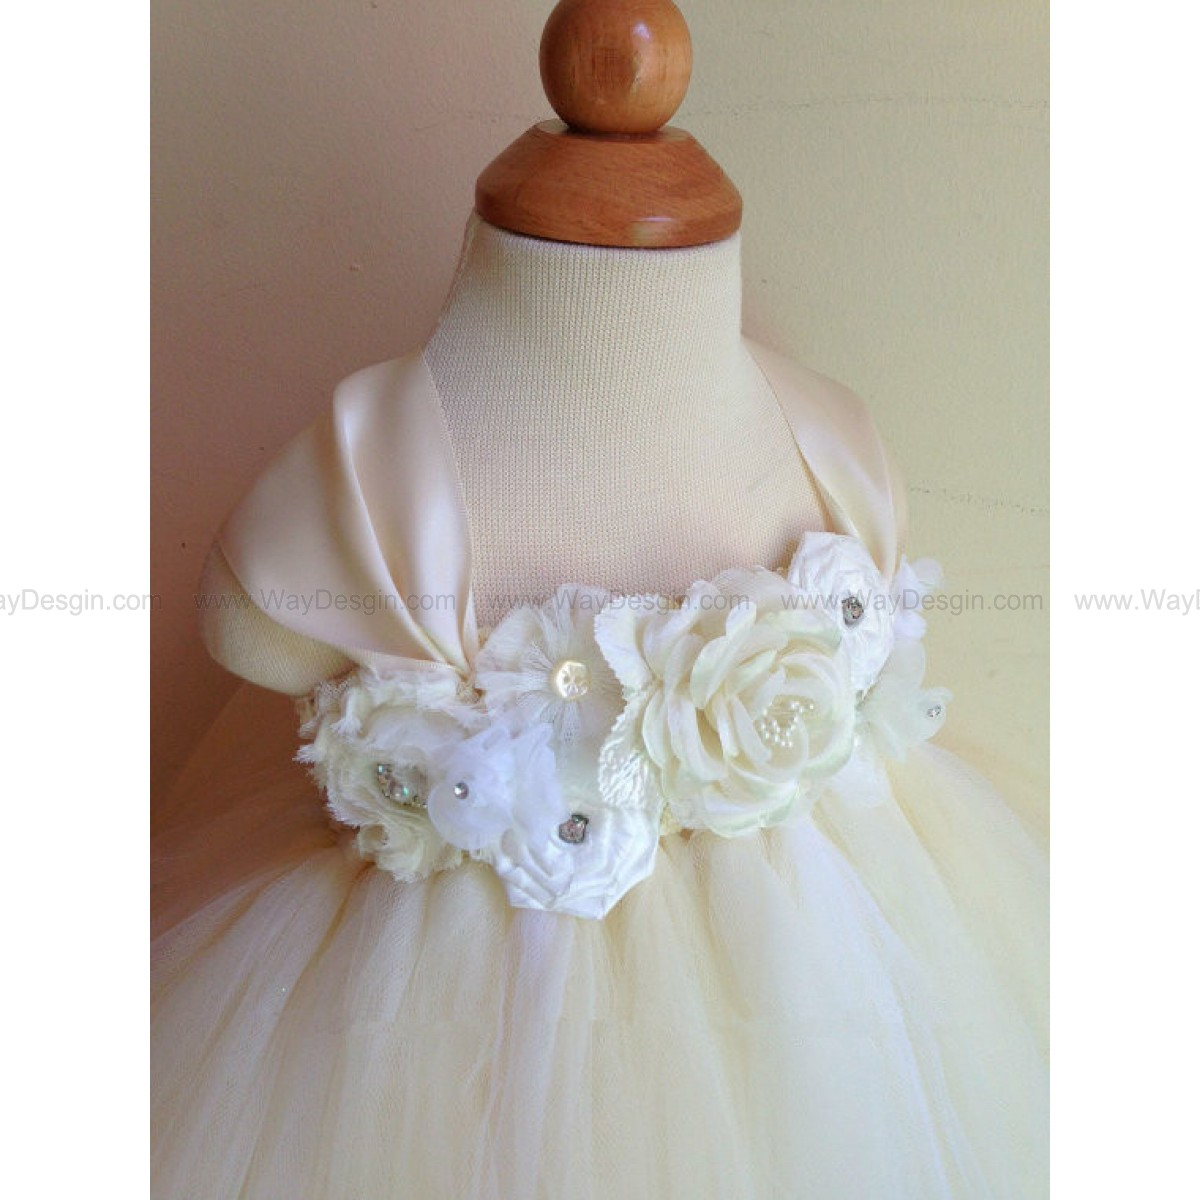 Flower girl dress, ivory and white tutu dress, baby tutu dress, toddler tutu dress, newborn